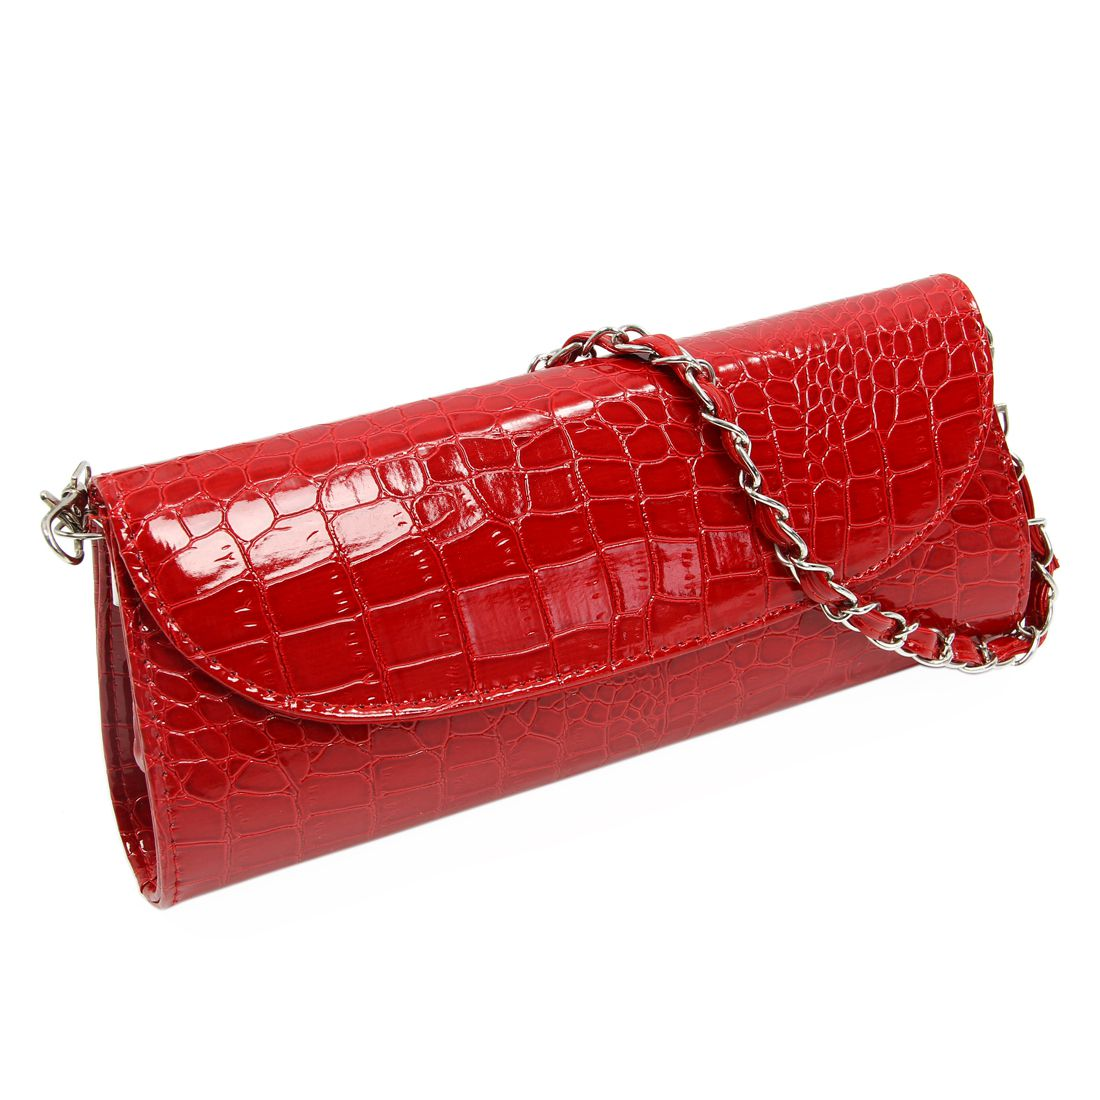 VSEN Fashion Designer Crocodile Pattern Ladies' Shoulder Chain Bag Wallet PU Leather Clutch Evening Bag Purse for Women Handbag yuanyu 2018 new hot free shipping import crocodile women chain bag fashion leather single shoulder bag small dinner packages